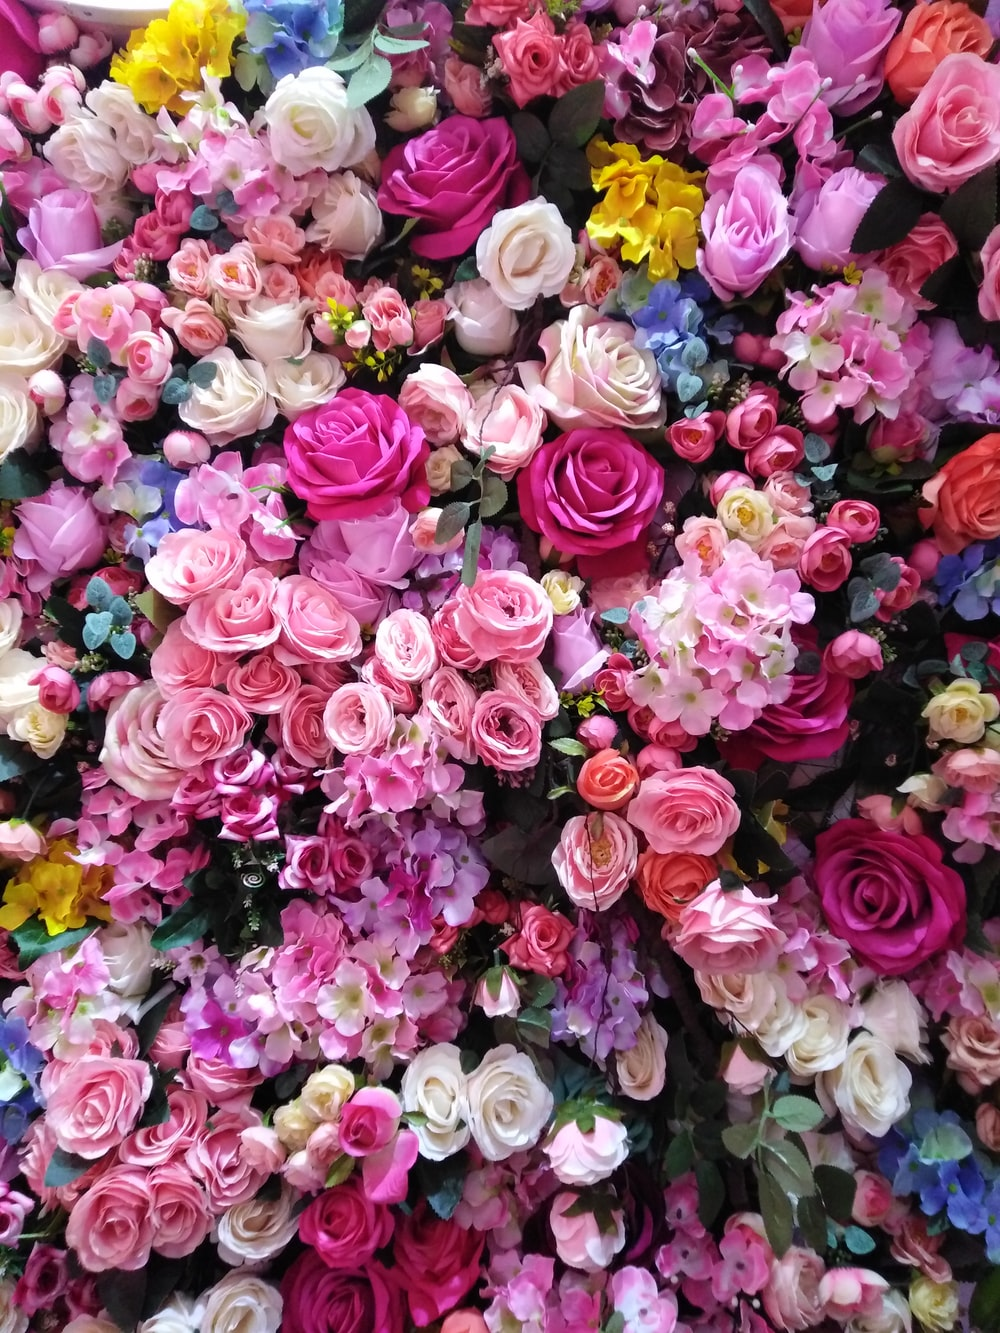 assorted-color rose flowers